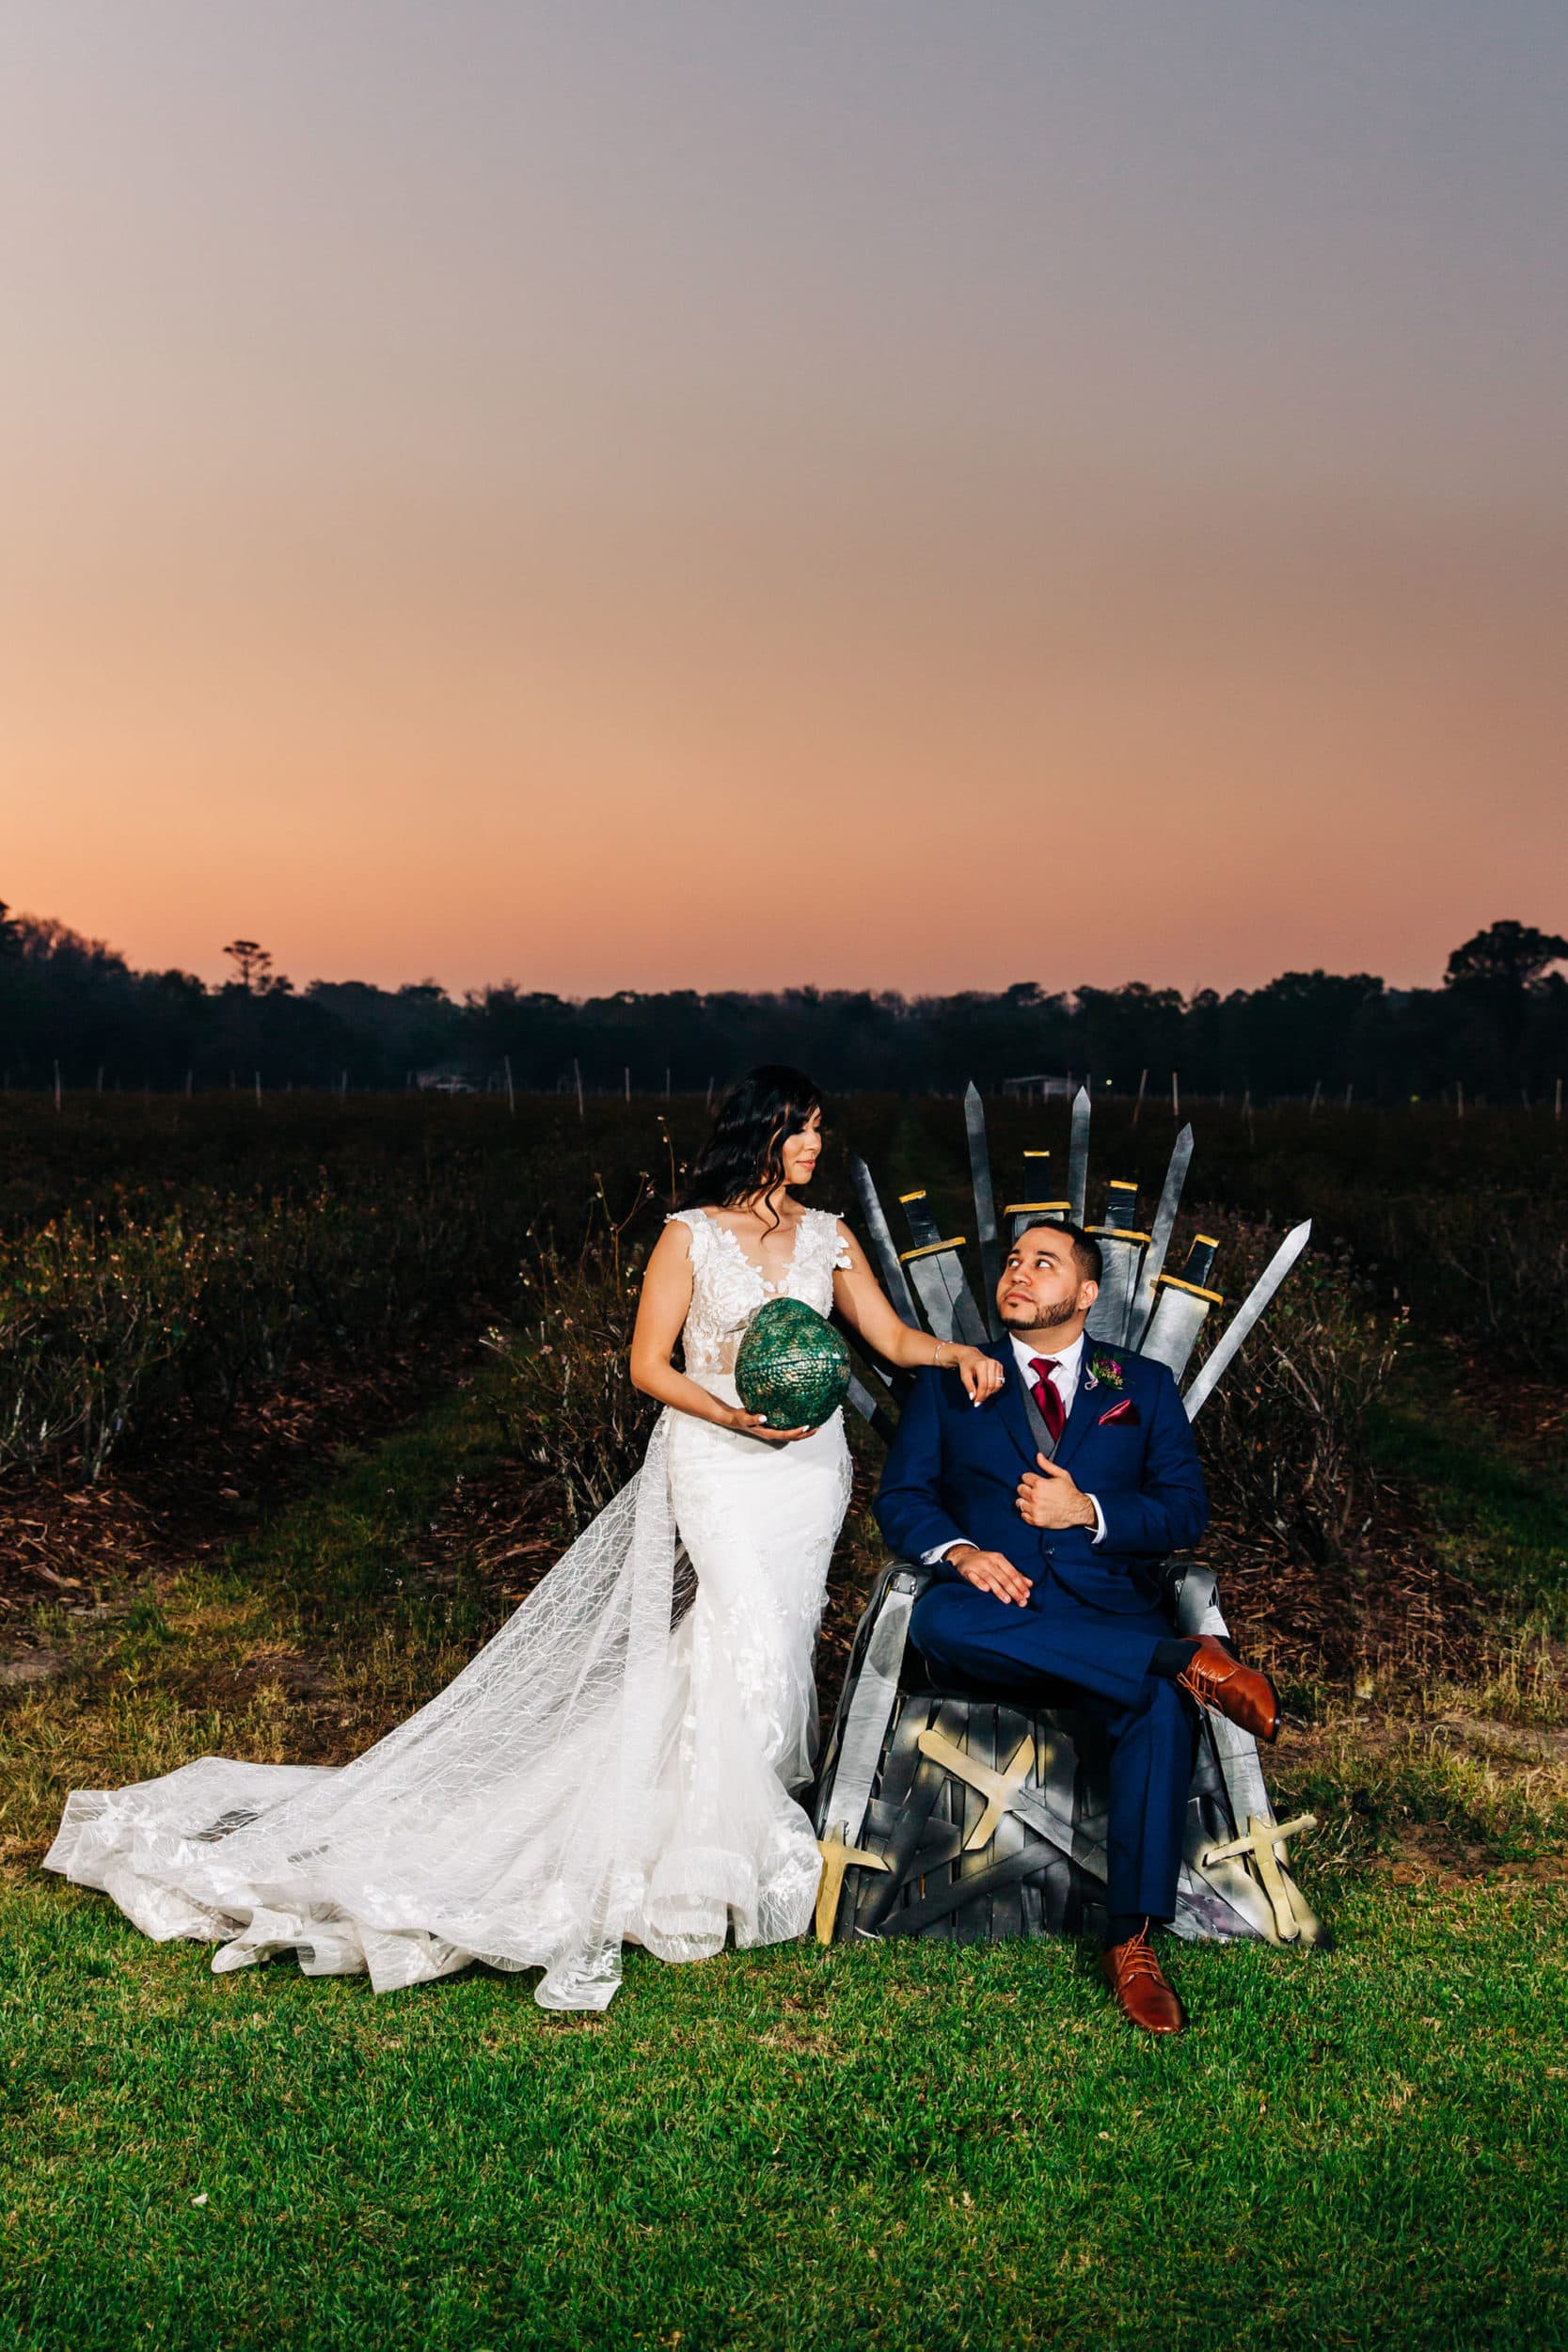 bride in white dress with green dragon egg with groom in navy suit with red tie with iron throne at Game of Thrones Wedding